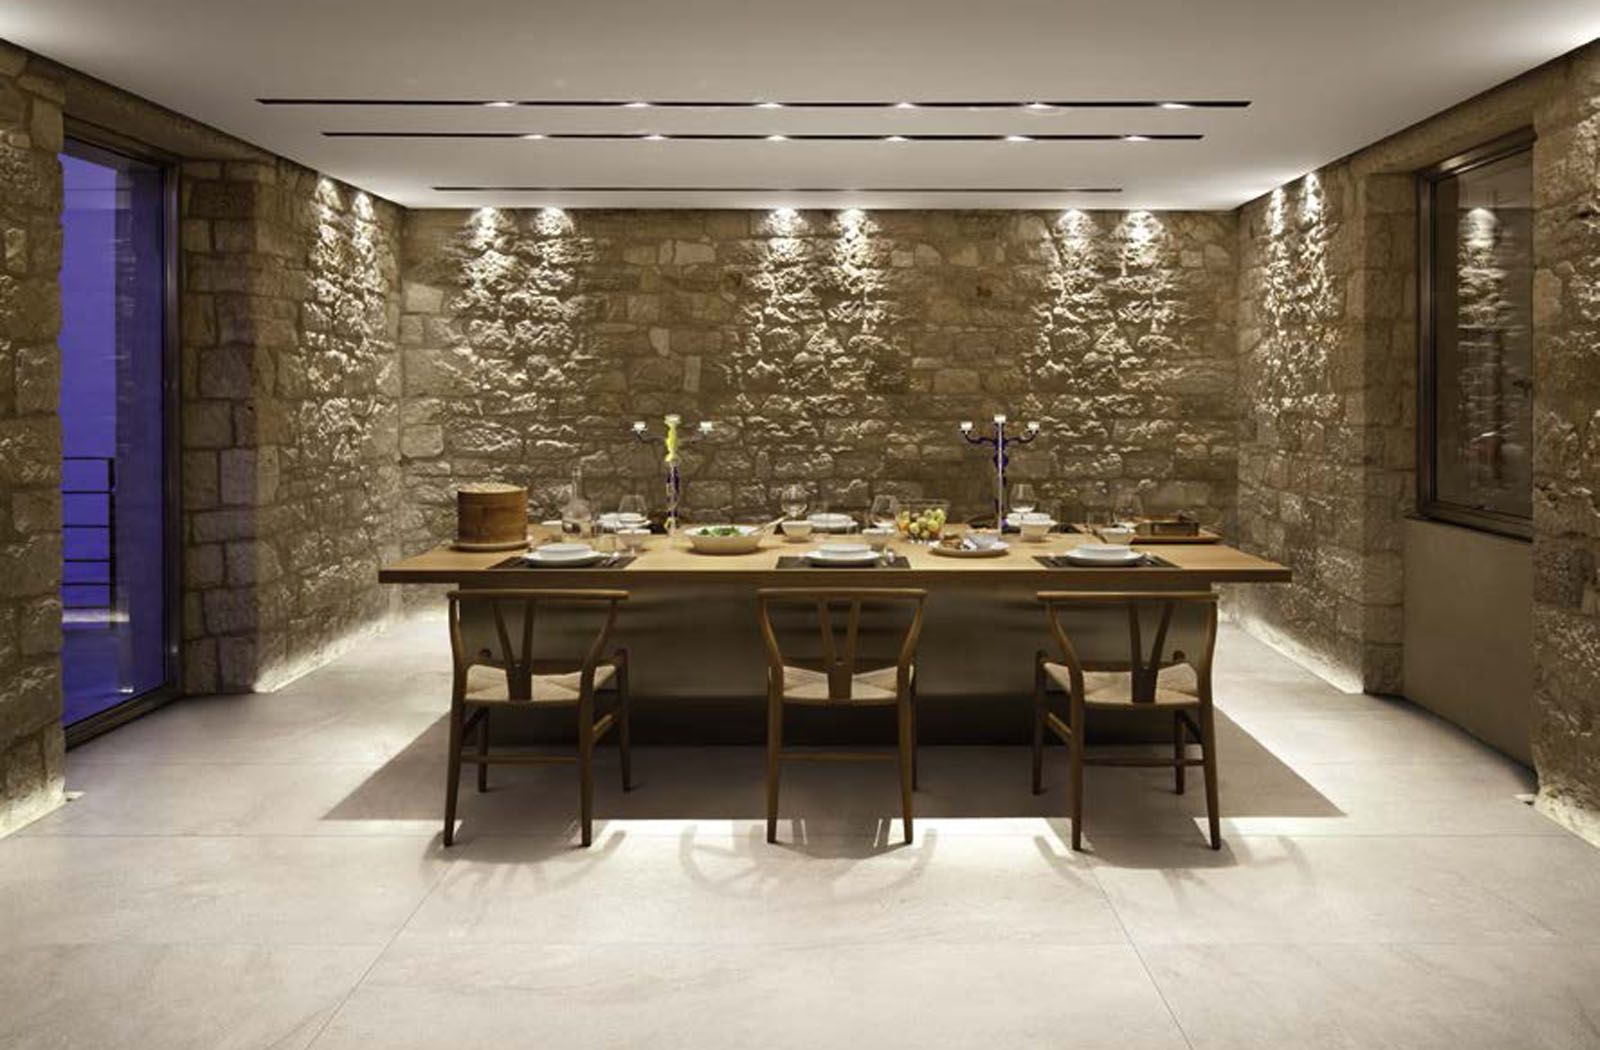 Traditional dining room decor with Styletech tiles from Florim